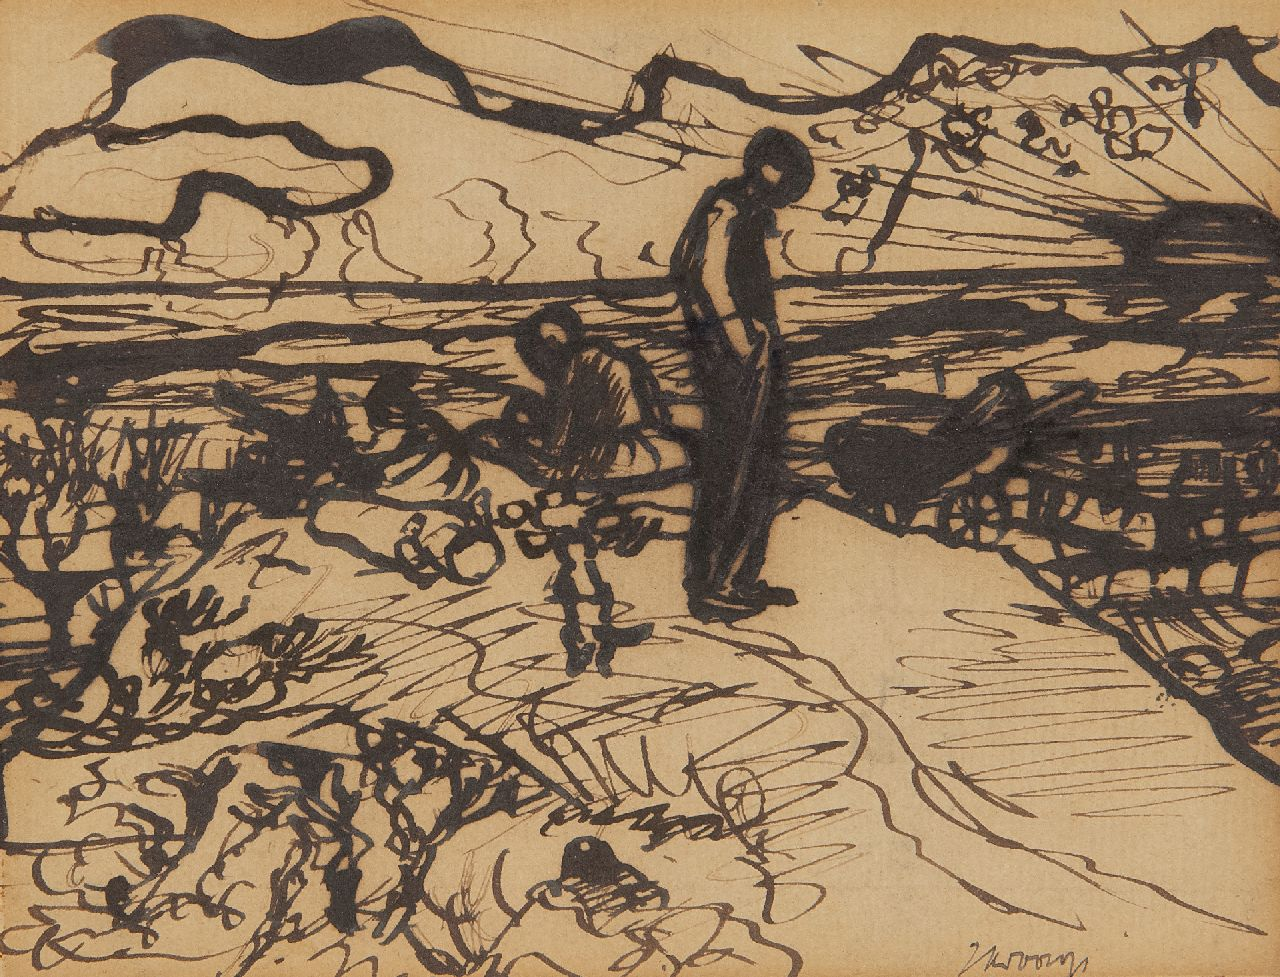 Jan Toorop | Vagabonds in the dunes, pen and ink on paper, 12.1 x 14.4 cm, signed l.r. and dated l.m. 1890